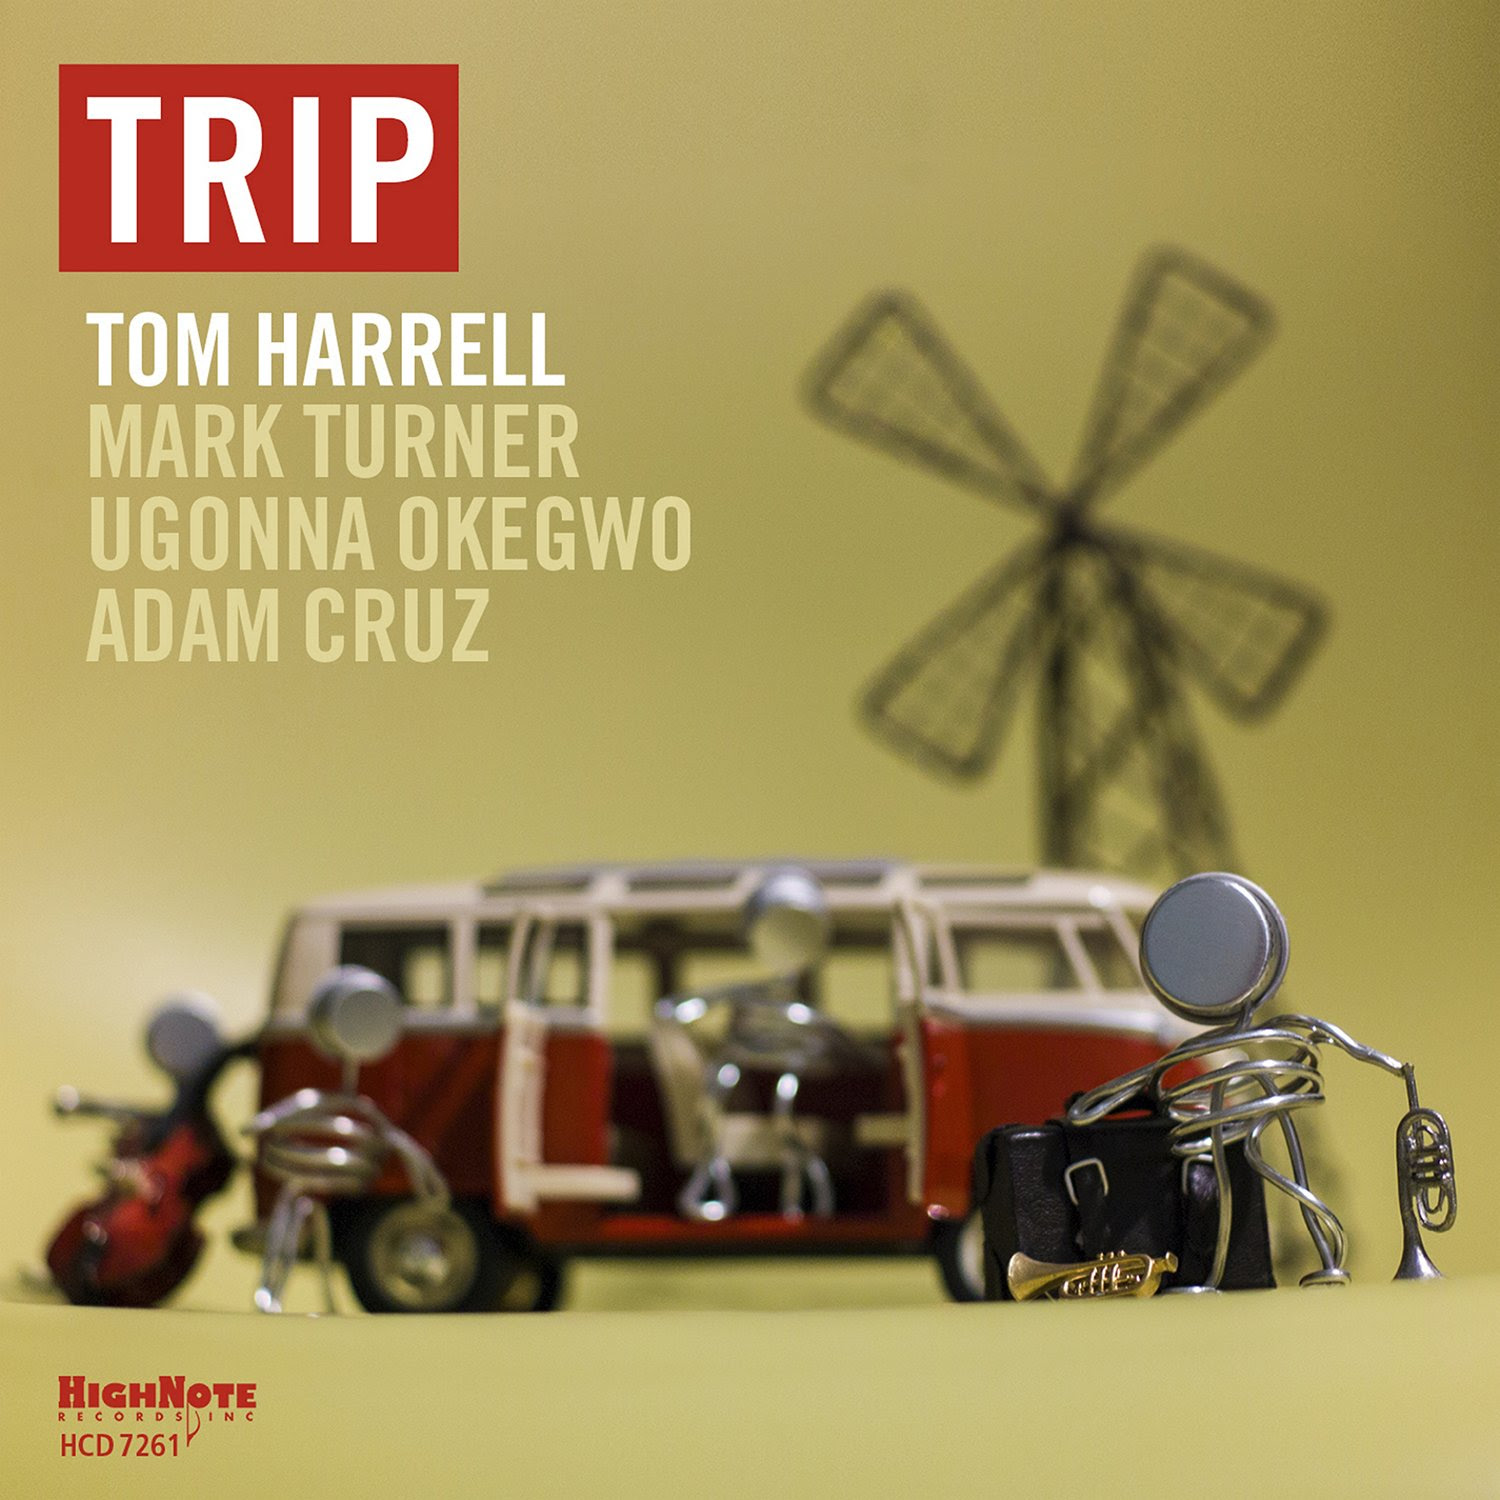 Tom Harrell - Trip cover